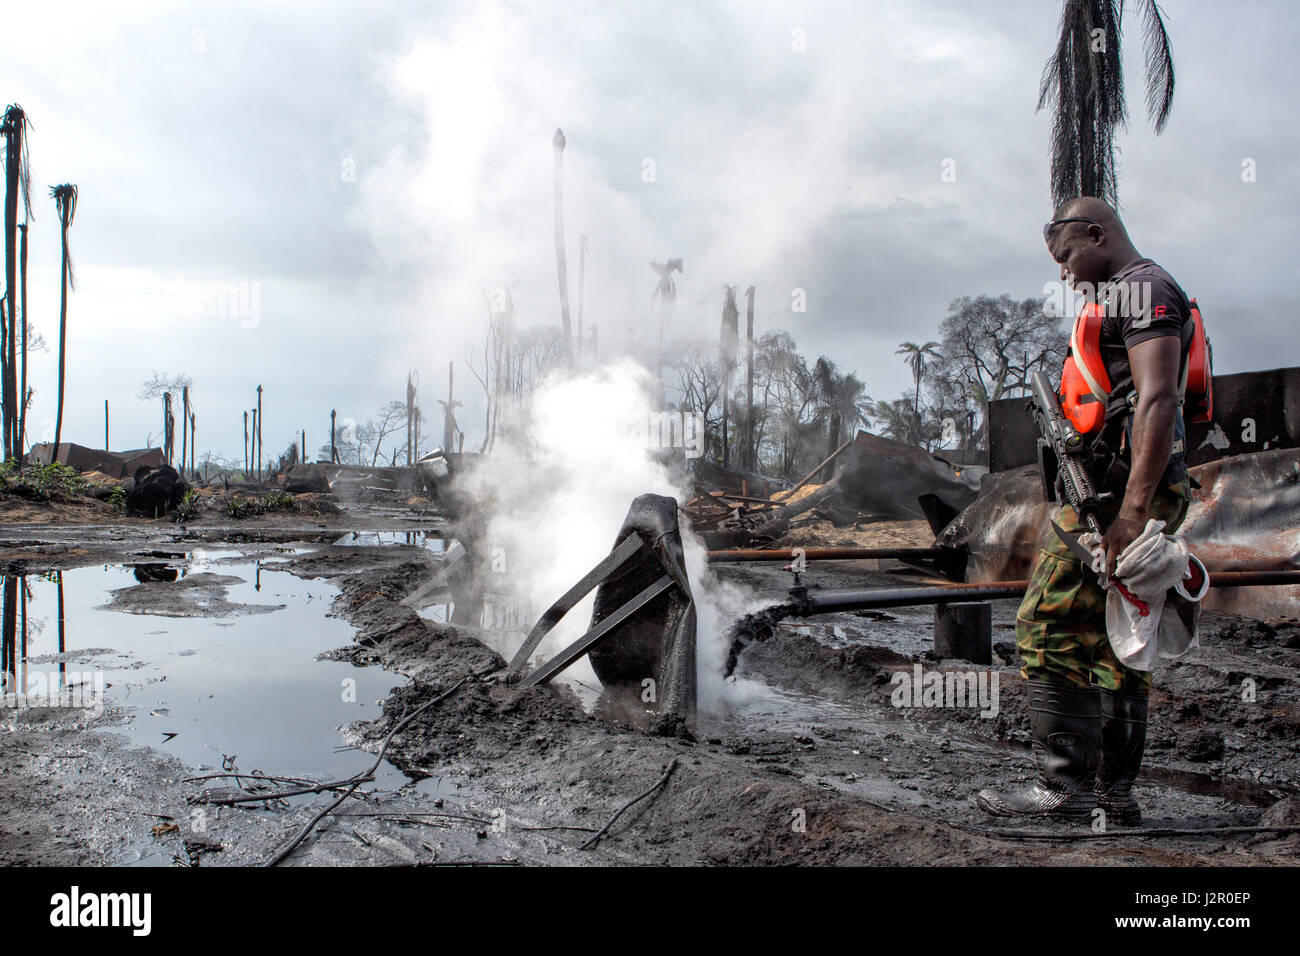 Boiling hot oil is pours into open dikes leading to open air storage pools at the site of an illegal refinery, causing - Stock Image